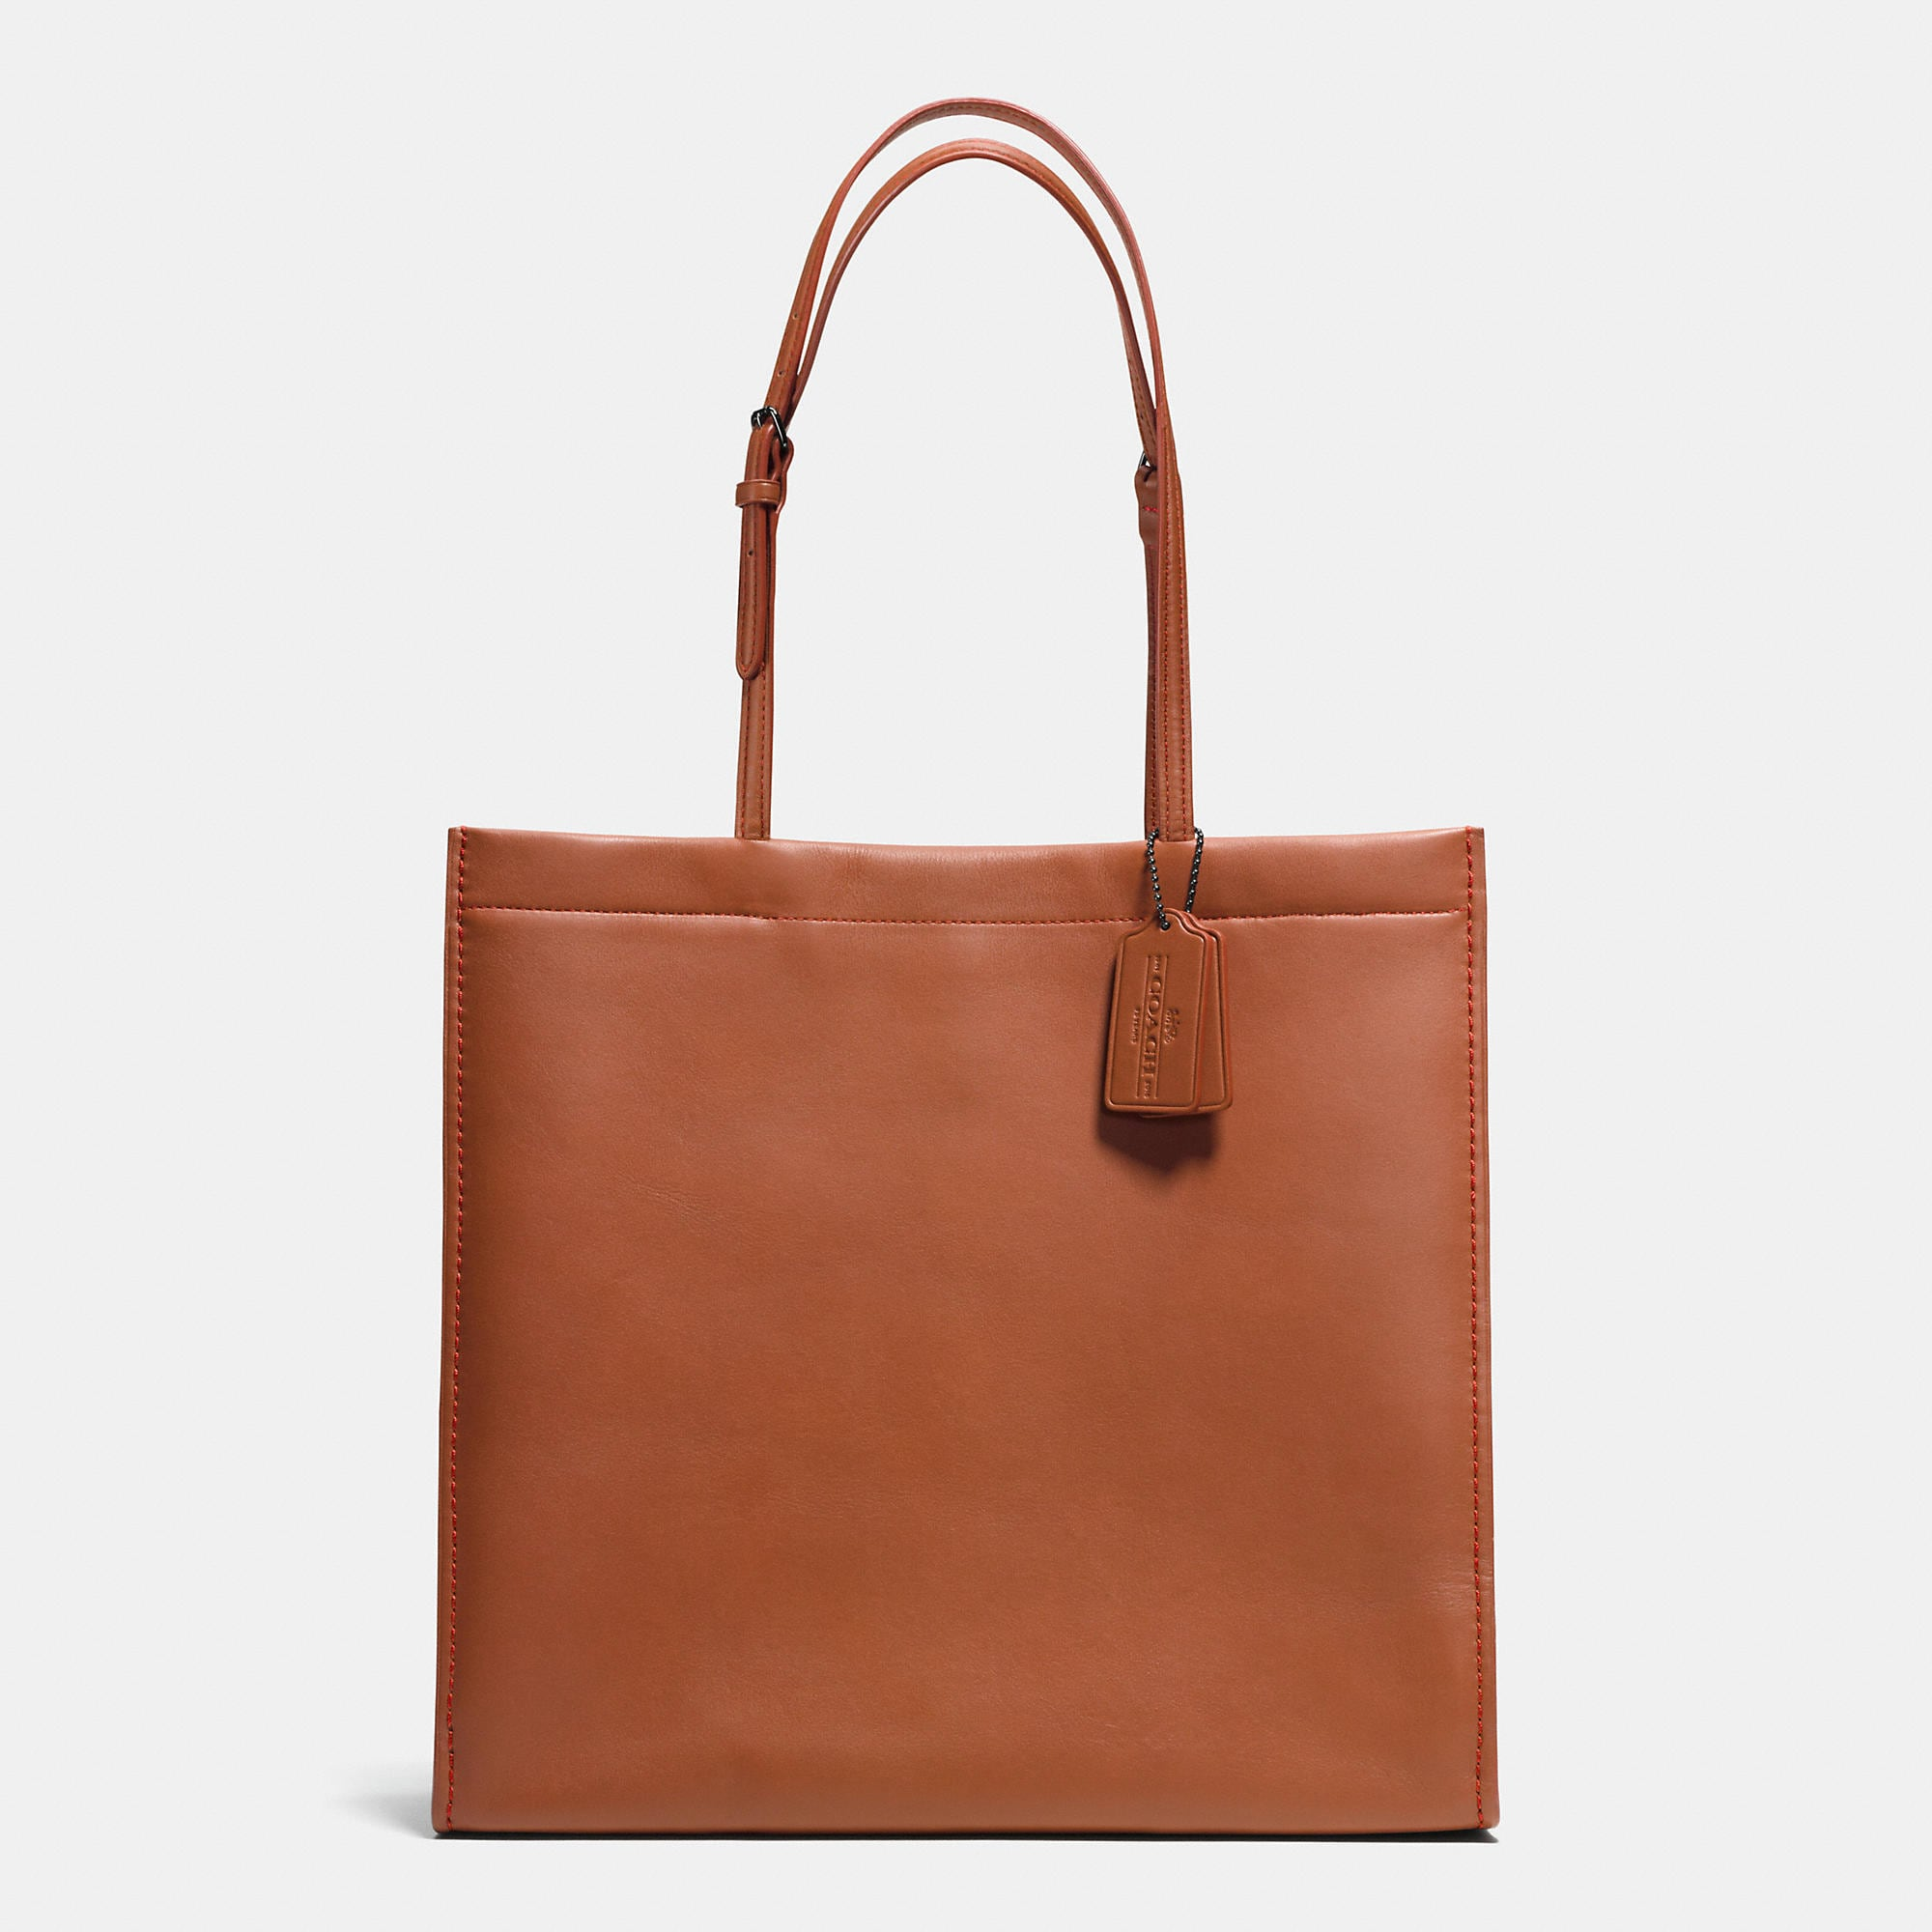 Coach Skinny Tote in Glovetanned Leather